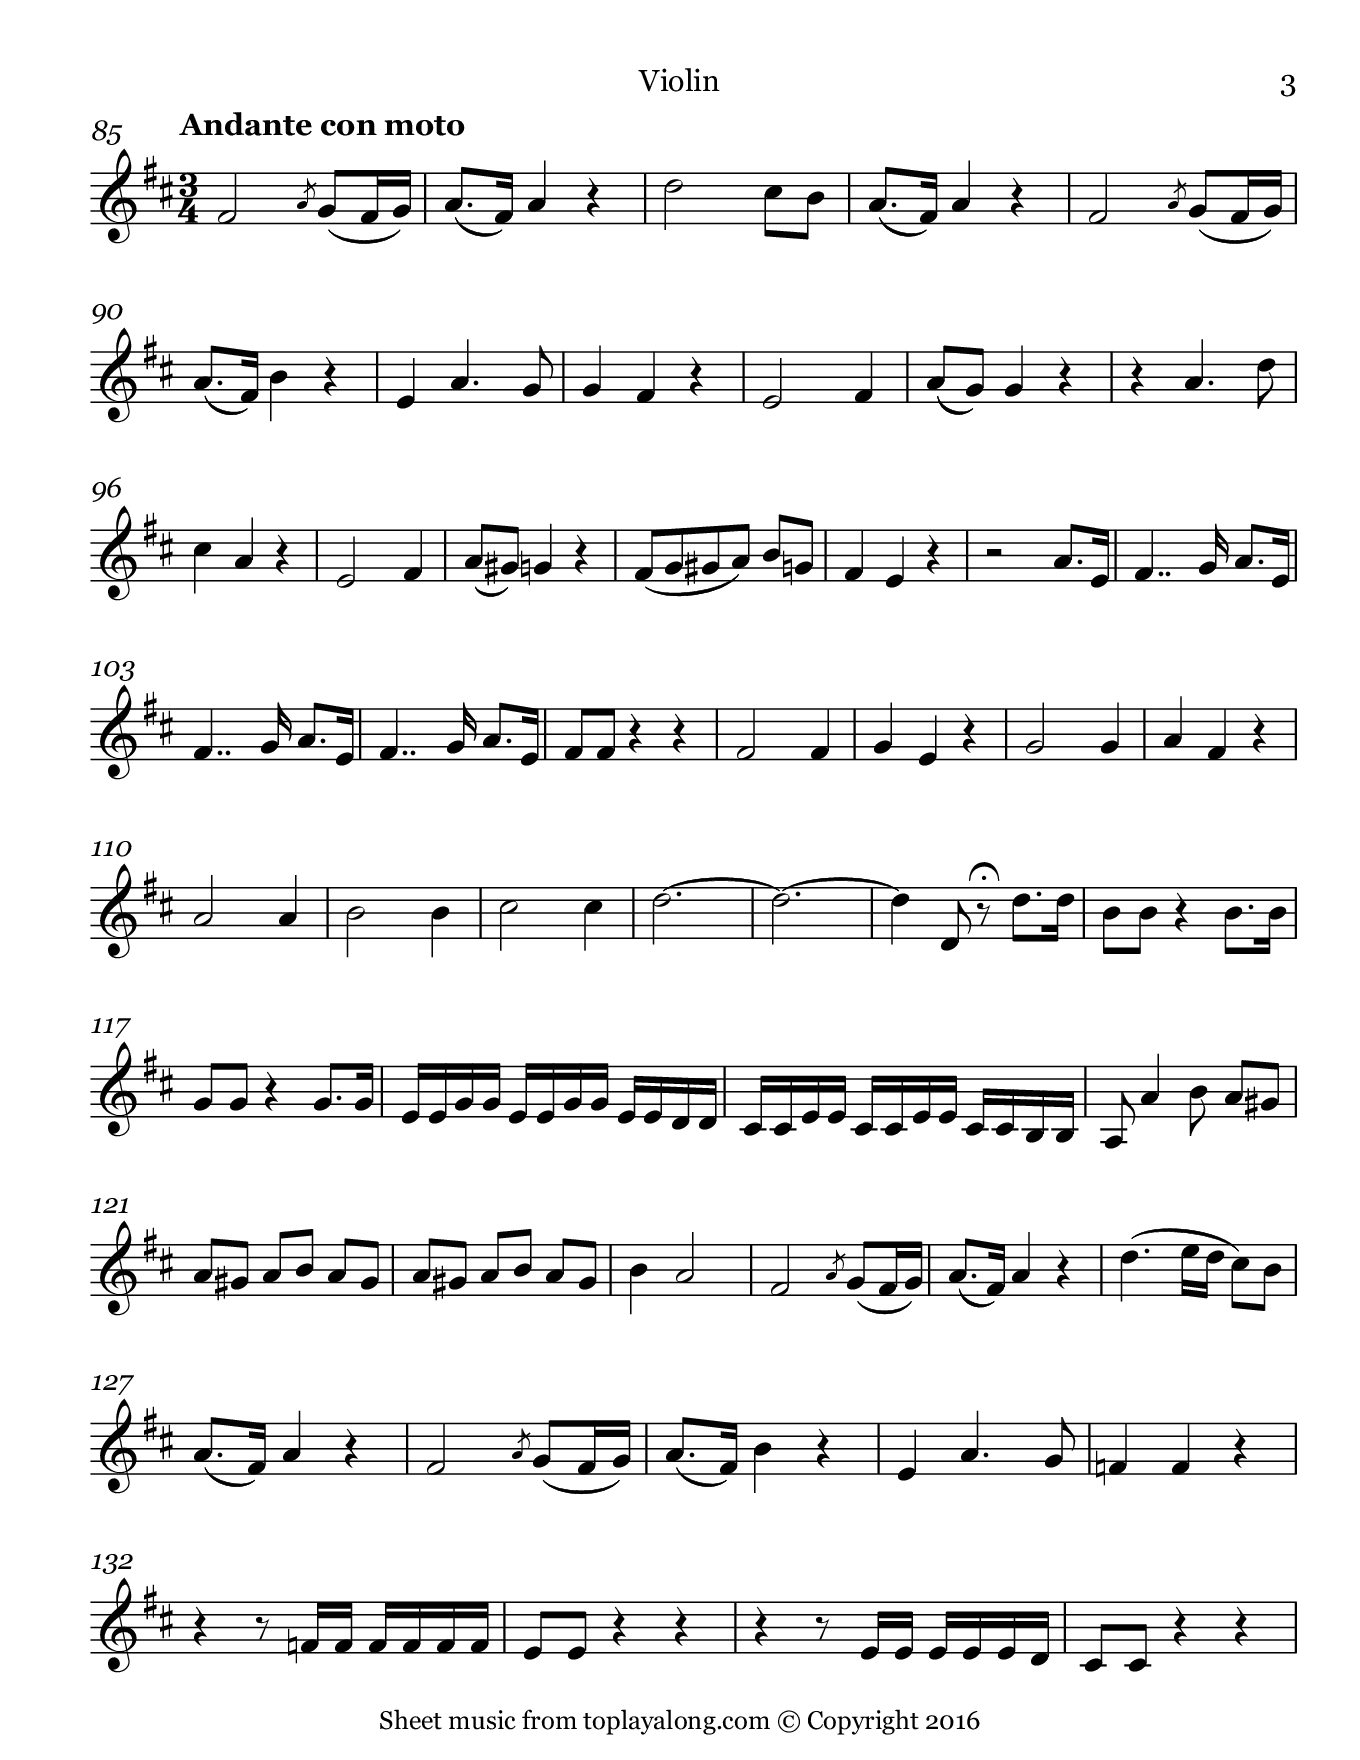 Madamina from Don Giovanni by Mozart. Sheet music for Violin, page 3.